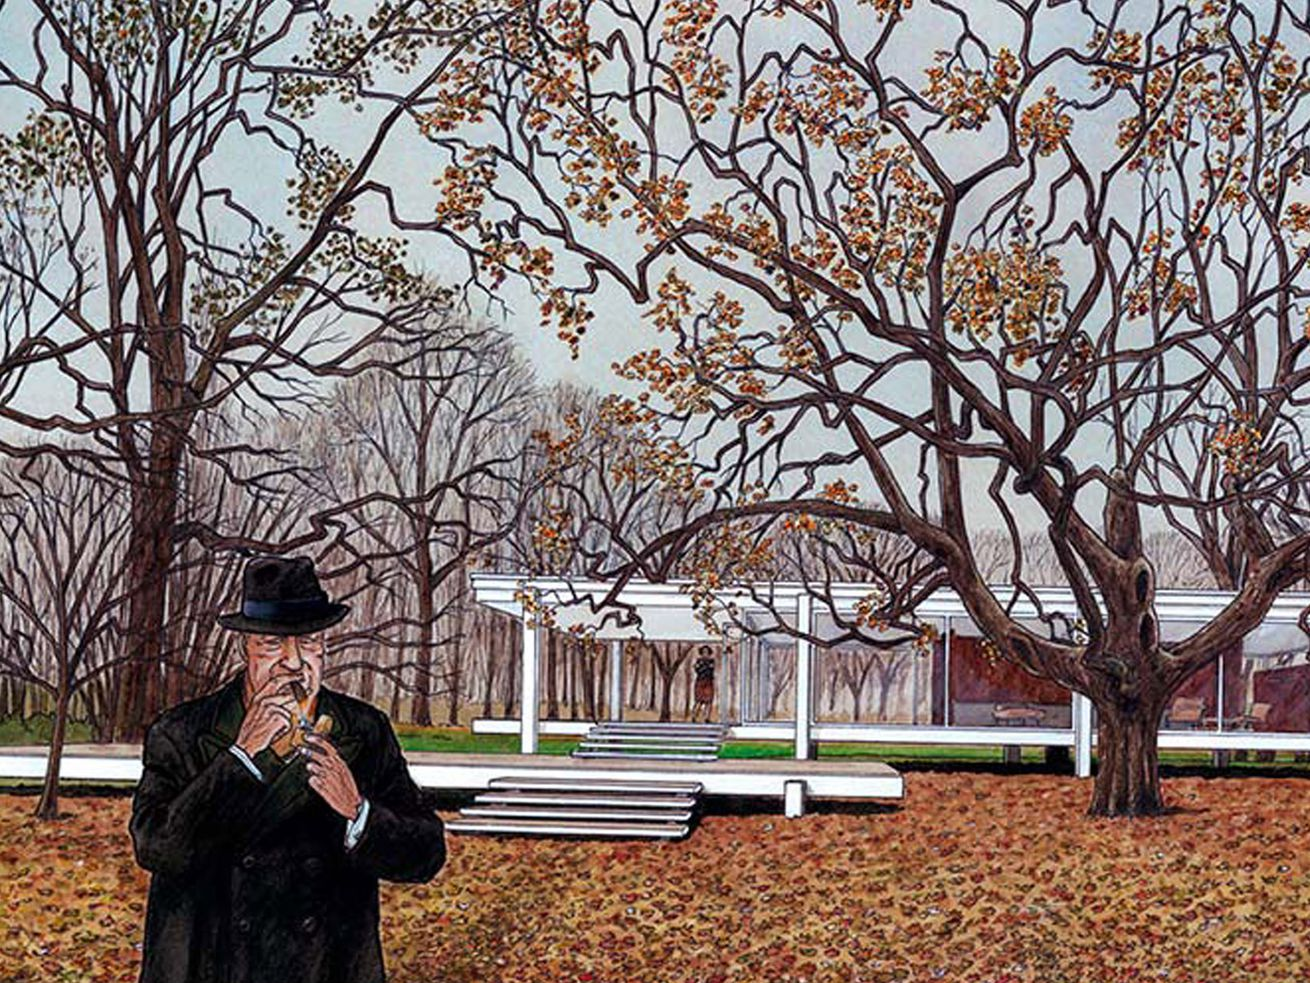 Graphic novel depicts the life of Mies van der Rohe